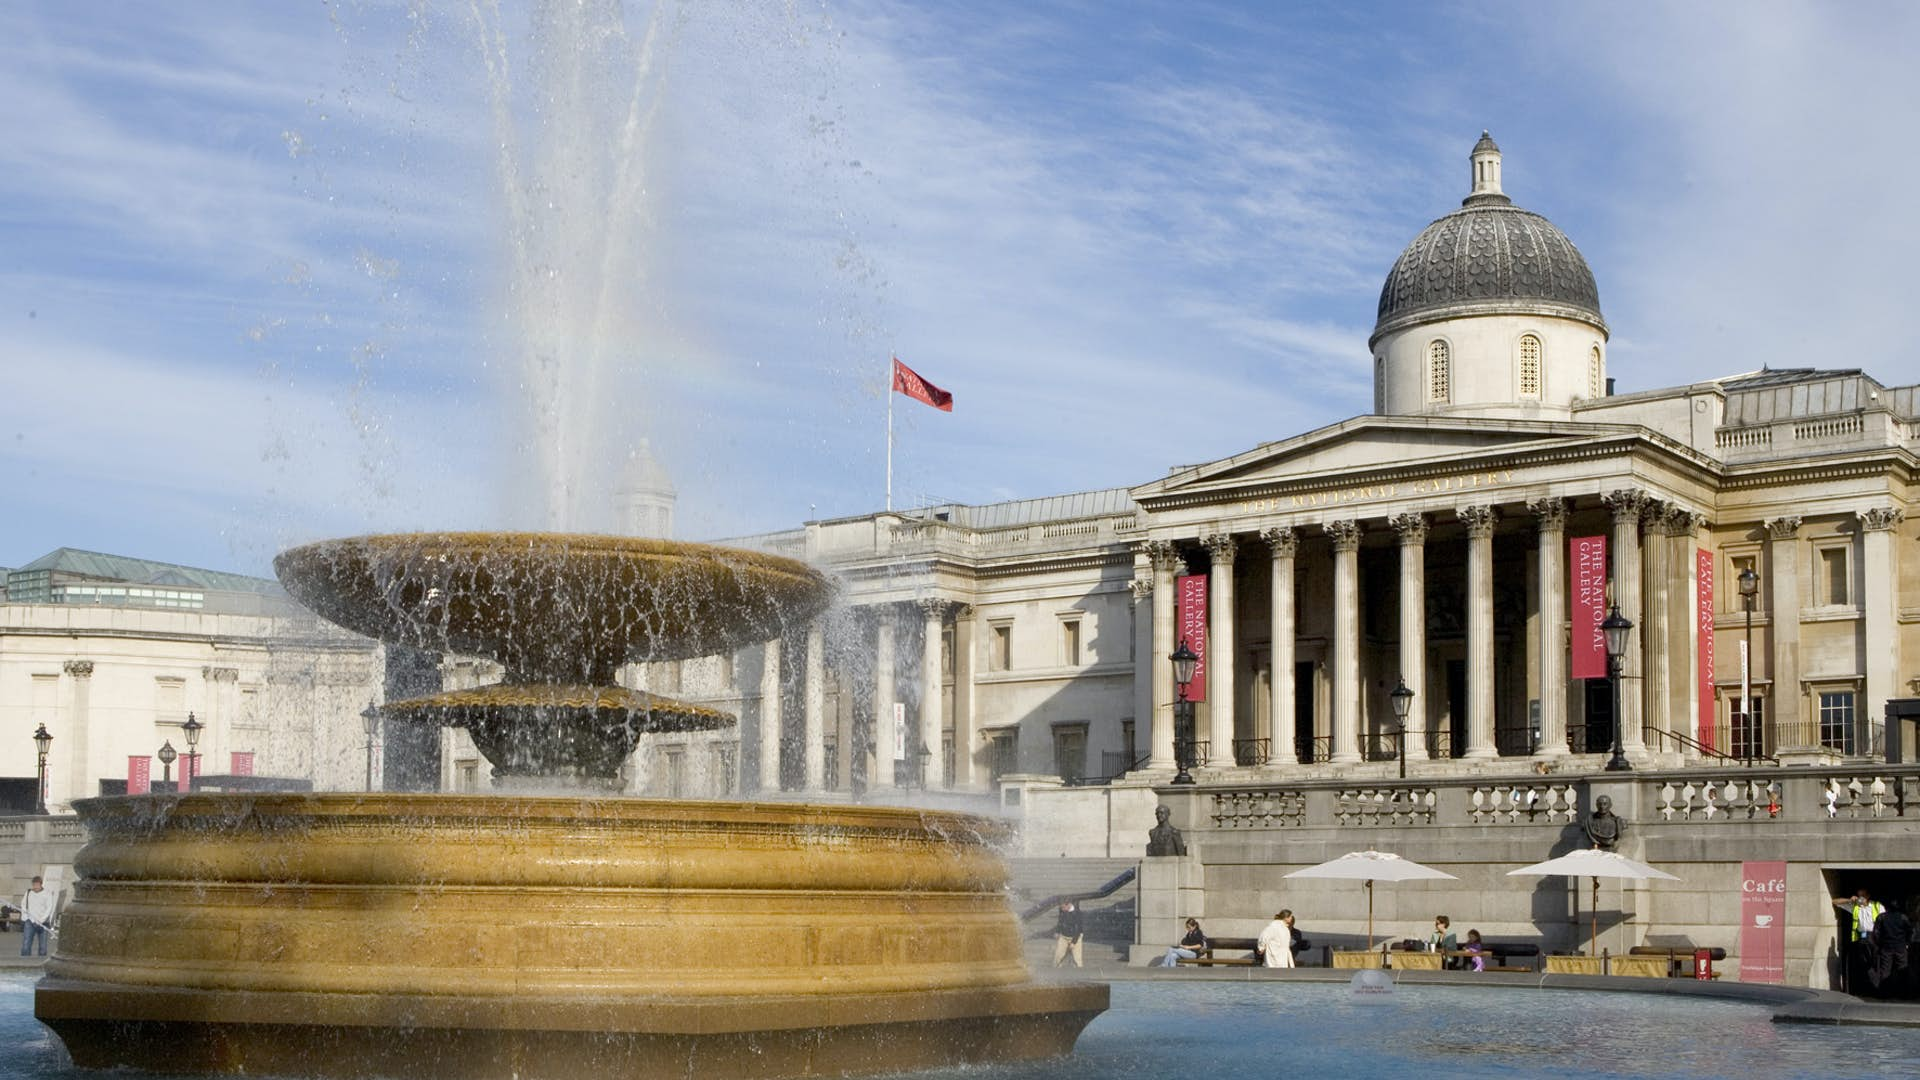 Trafalgar Square in foreground, gallery in background